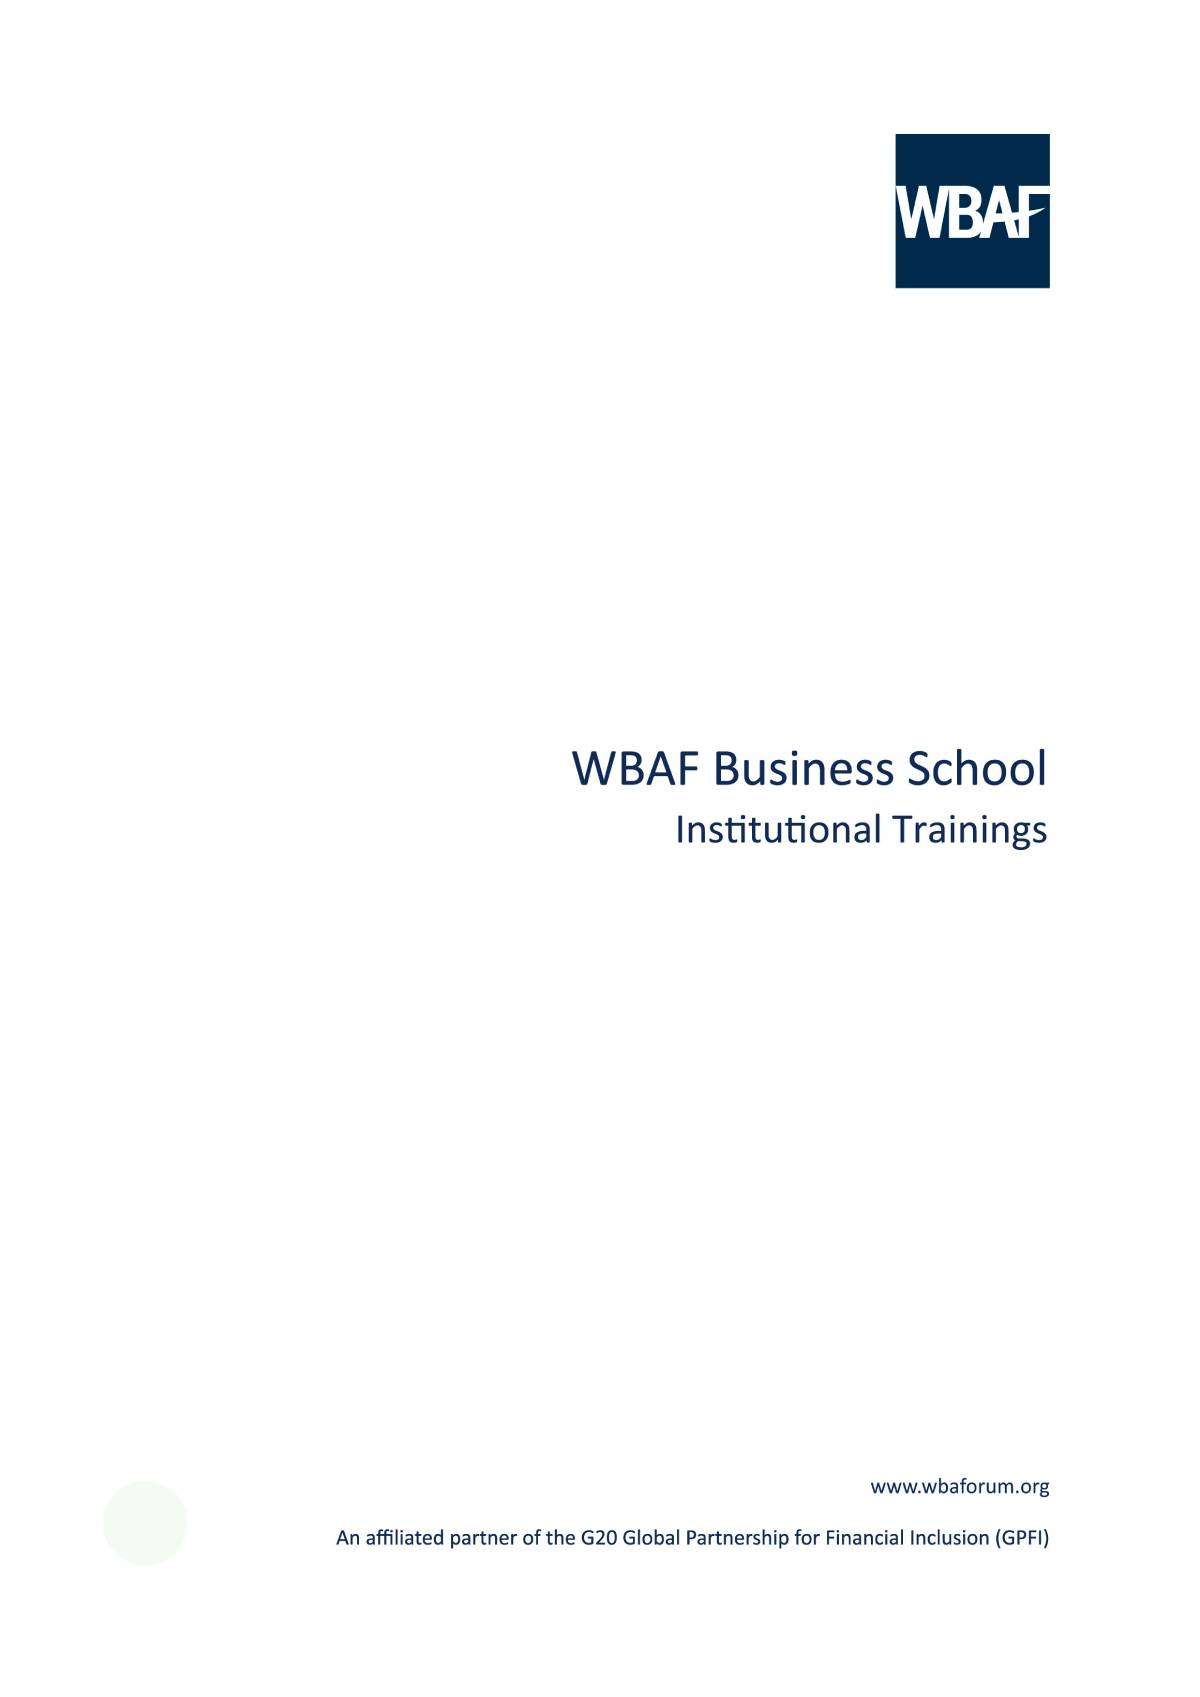 Wbaf Business School - Institutional Trainings